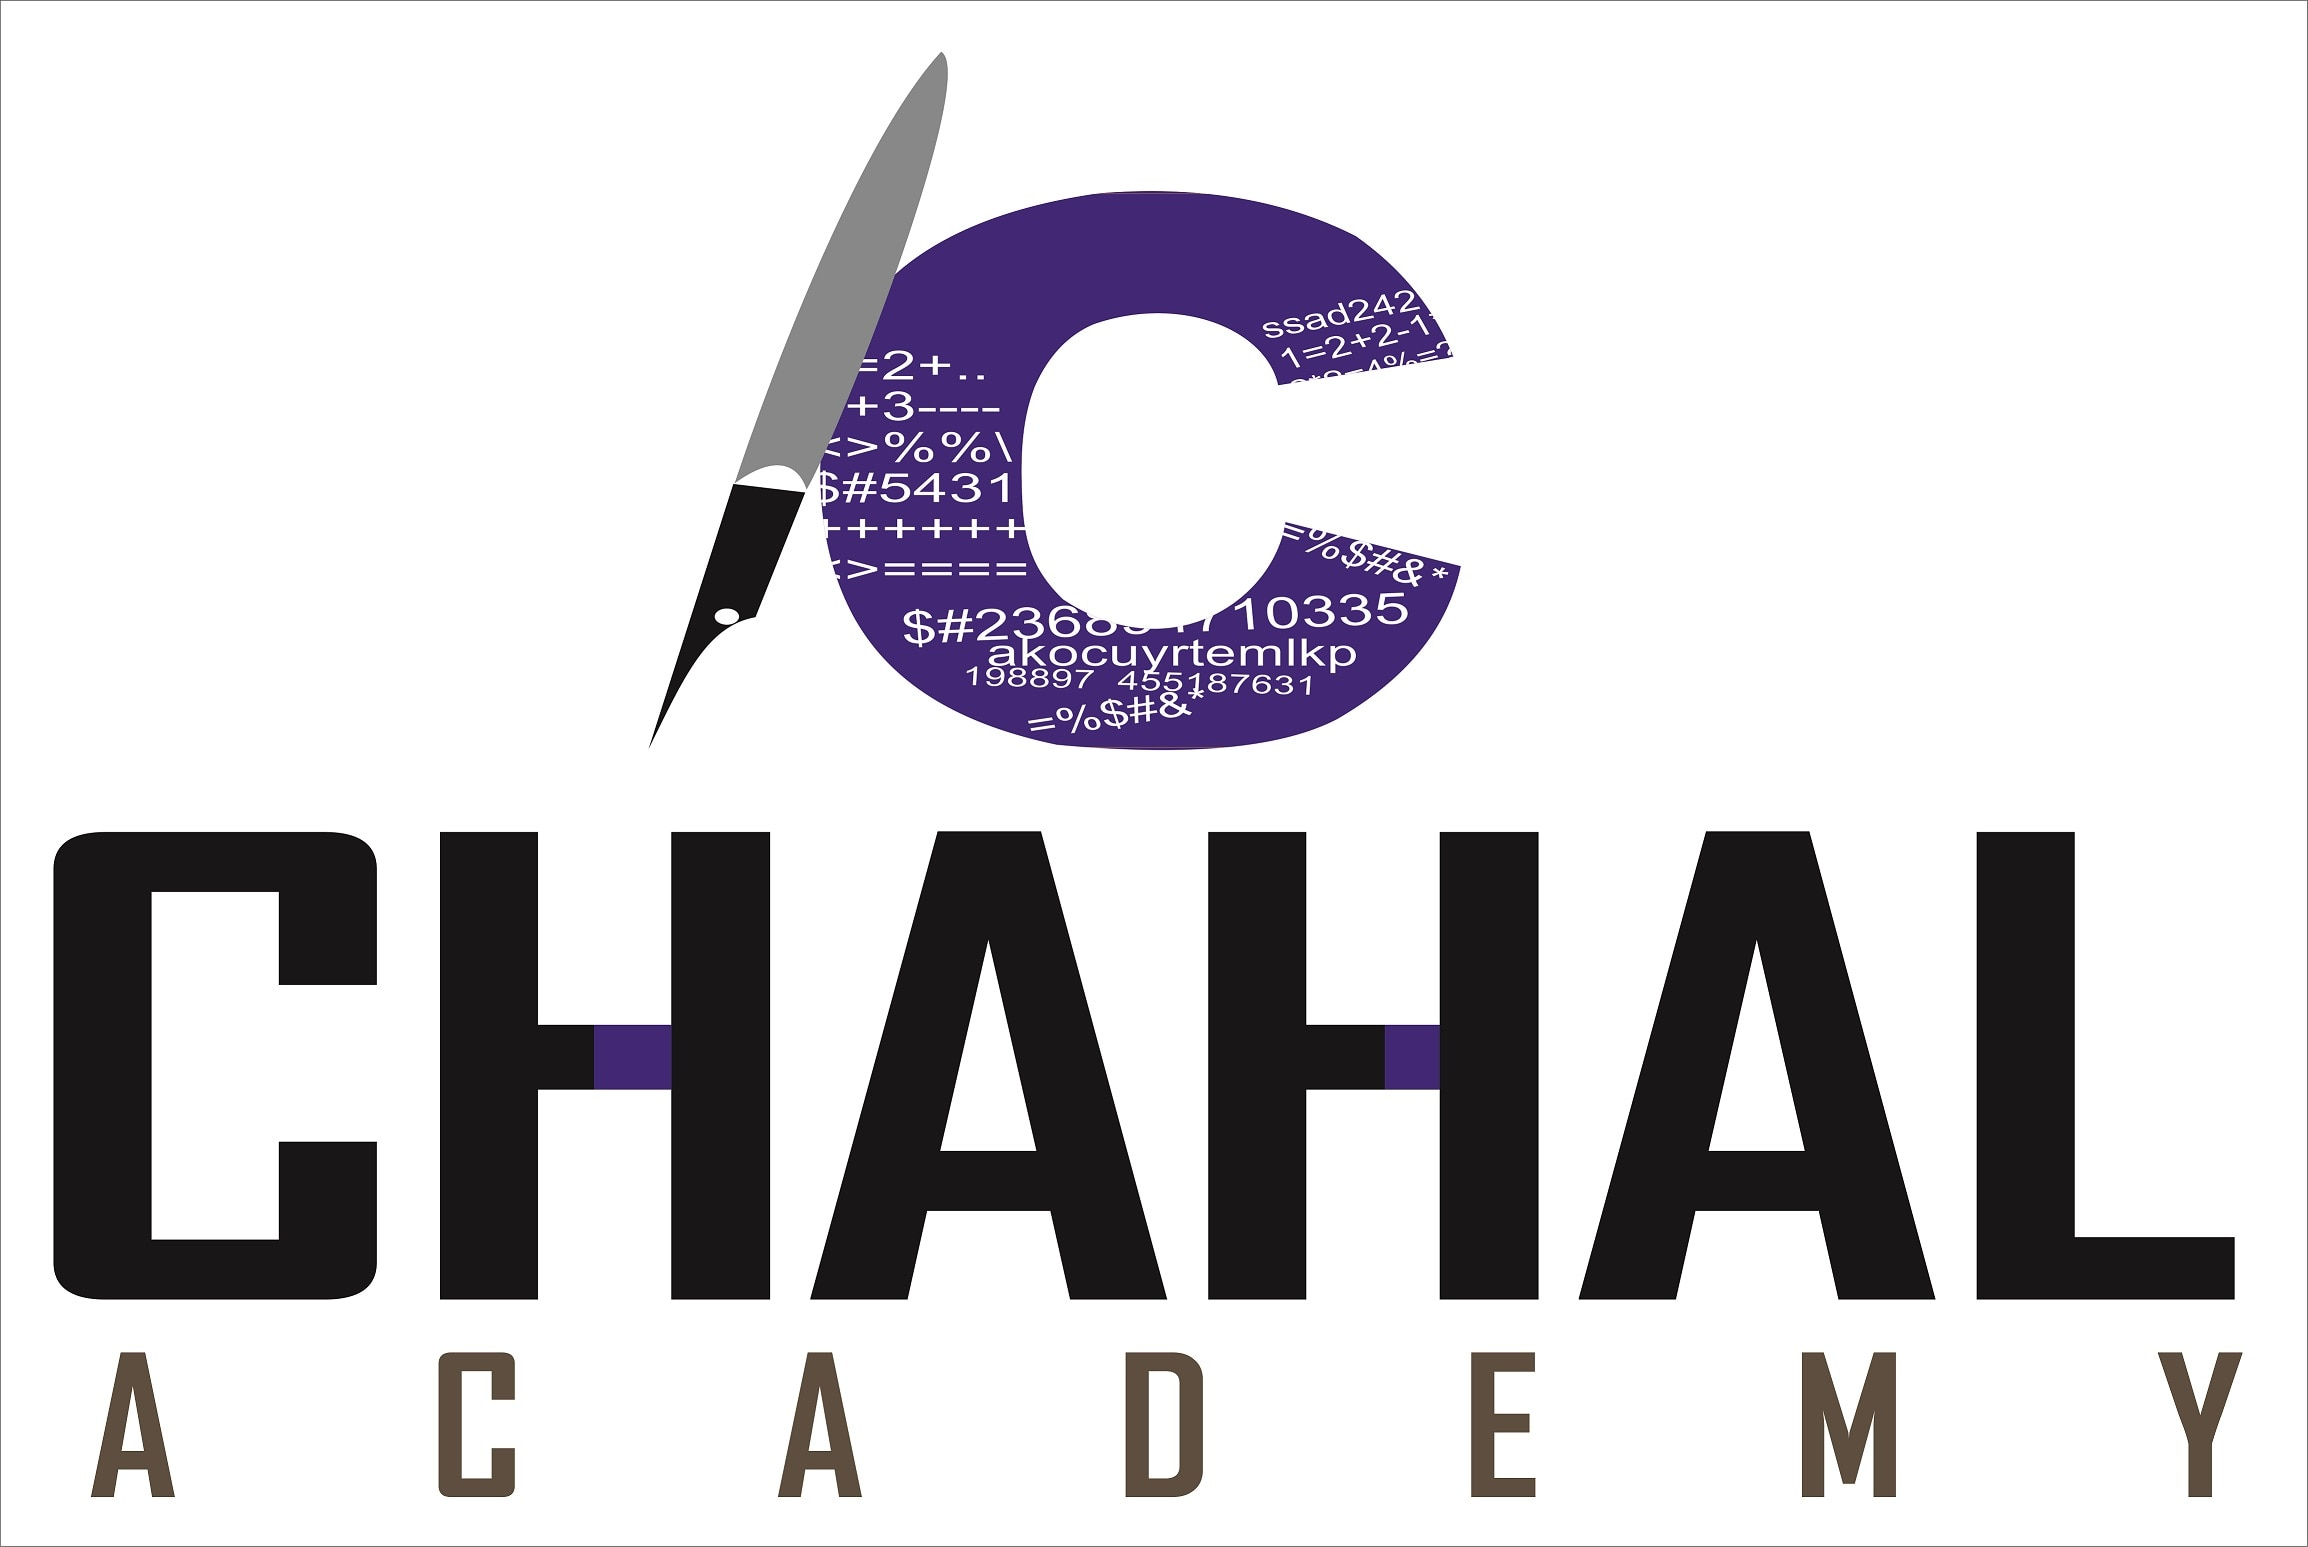 Chahal academy provides the best upsc exam preparation in Ahmedabad. For every subject we have a specialist faculty member. Weekly test schedule is also given which will help you to prepare in advance for upsc exam.